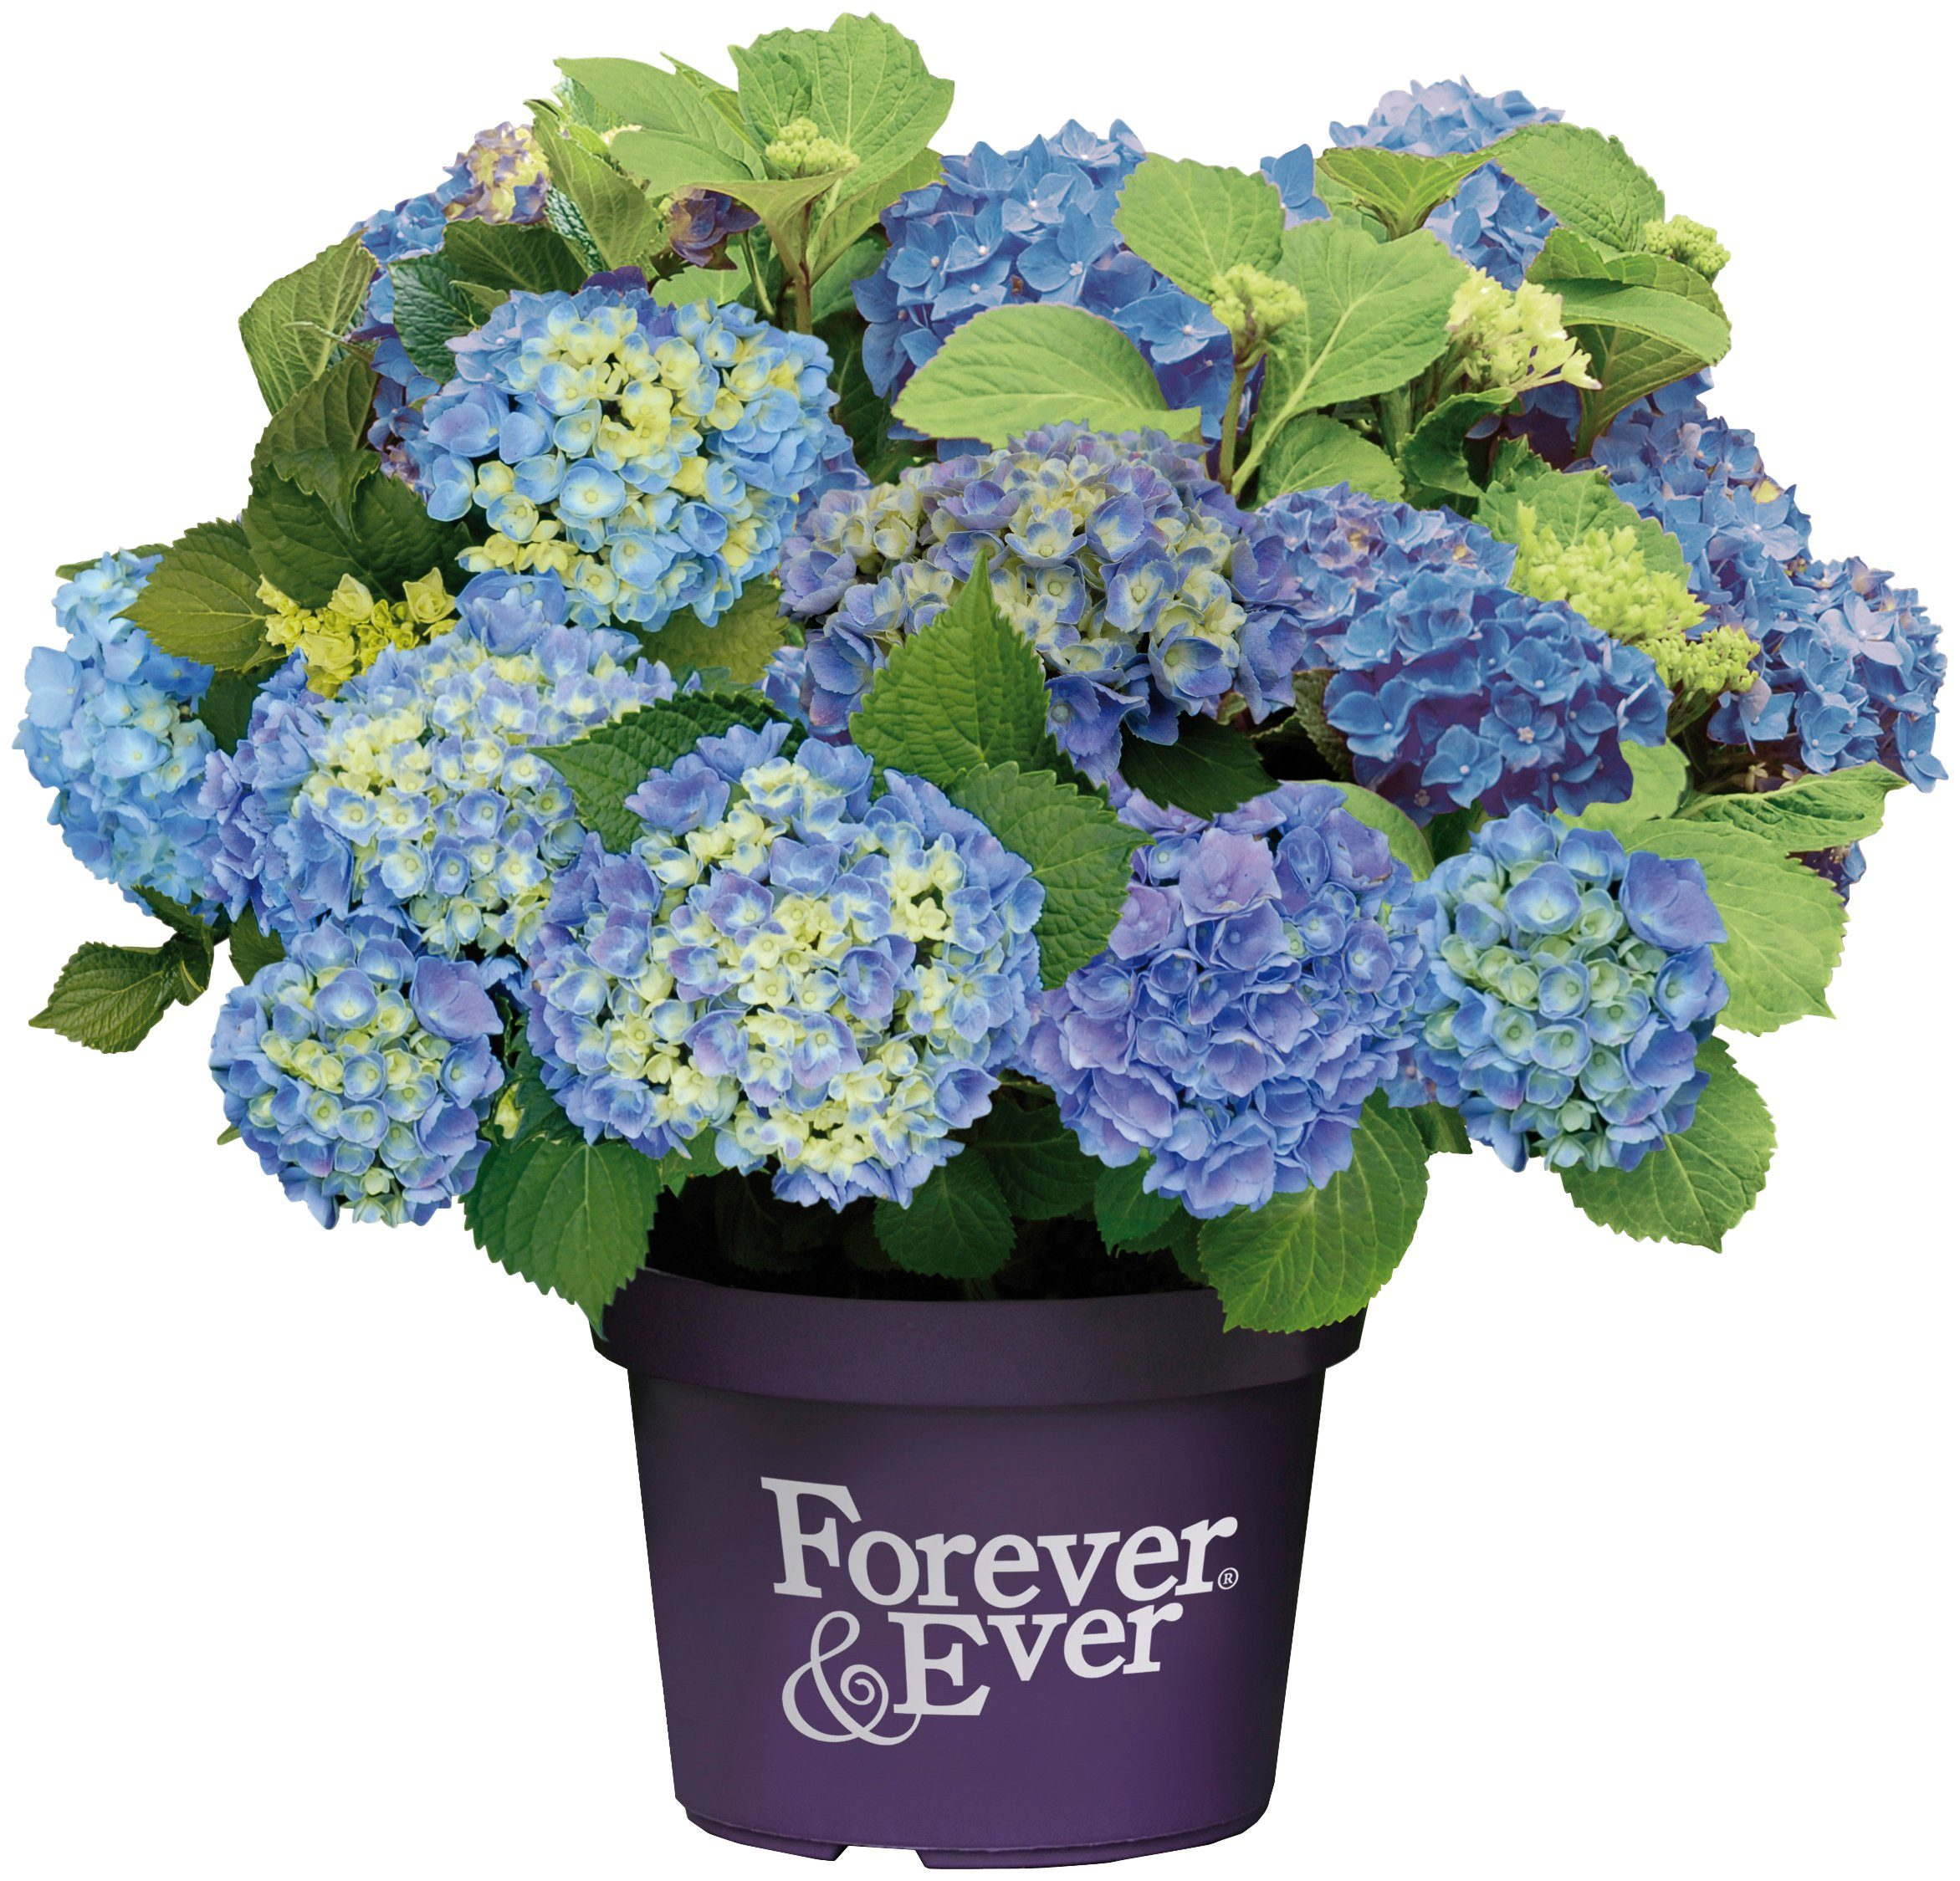 BCM Hortensie »Forever and Ever Blue«, Höhe: 30-40 cm, 1 Pflanze